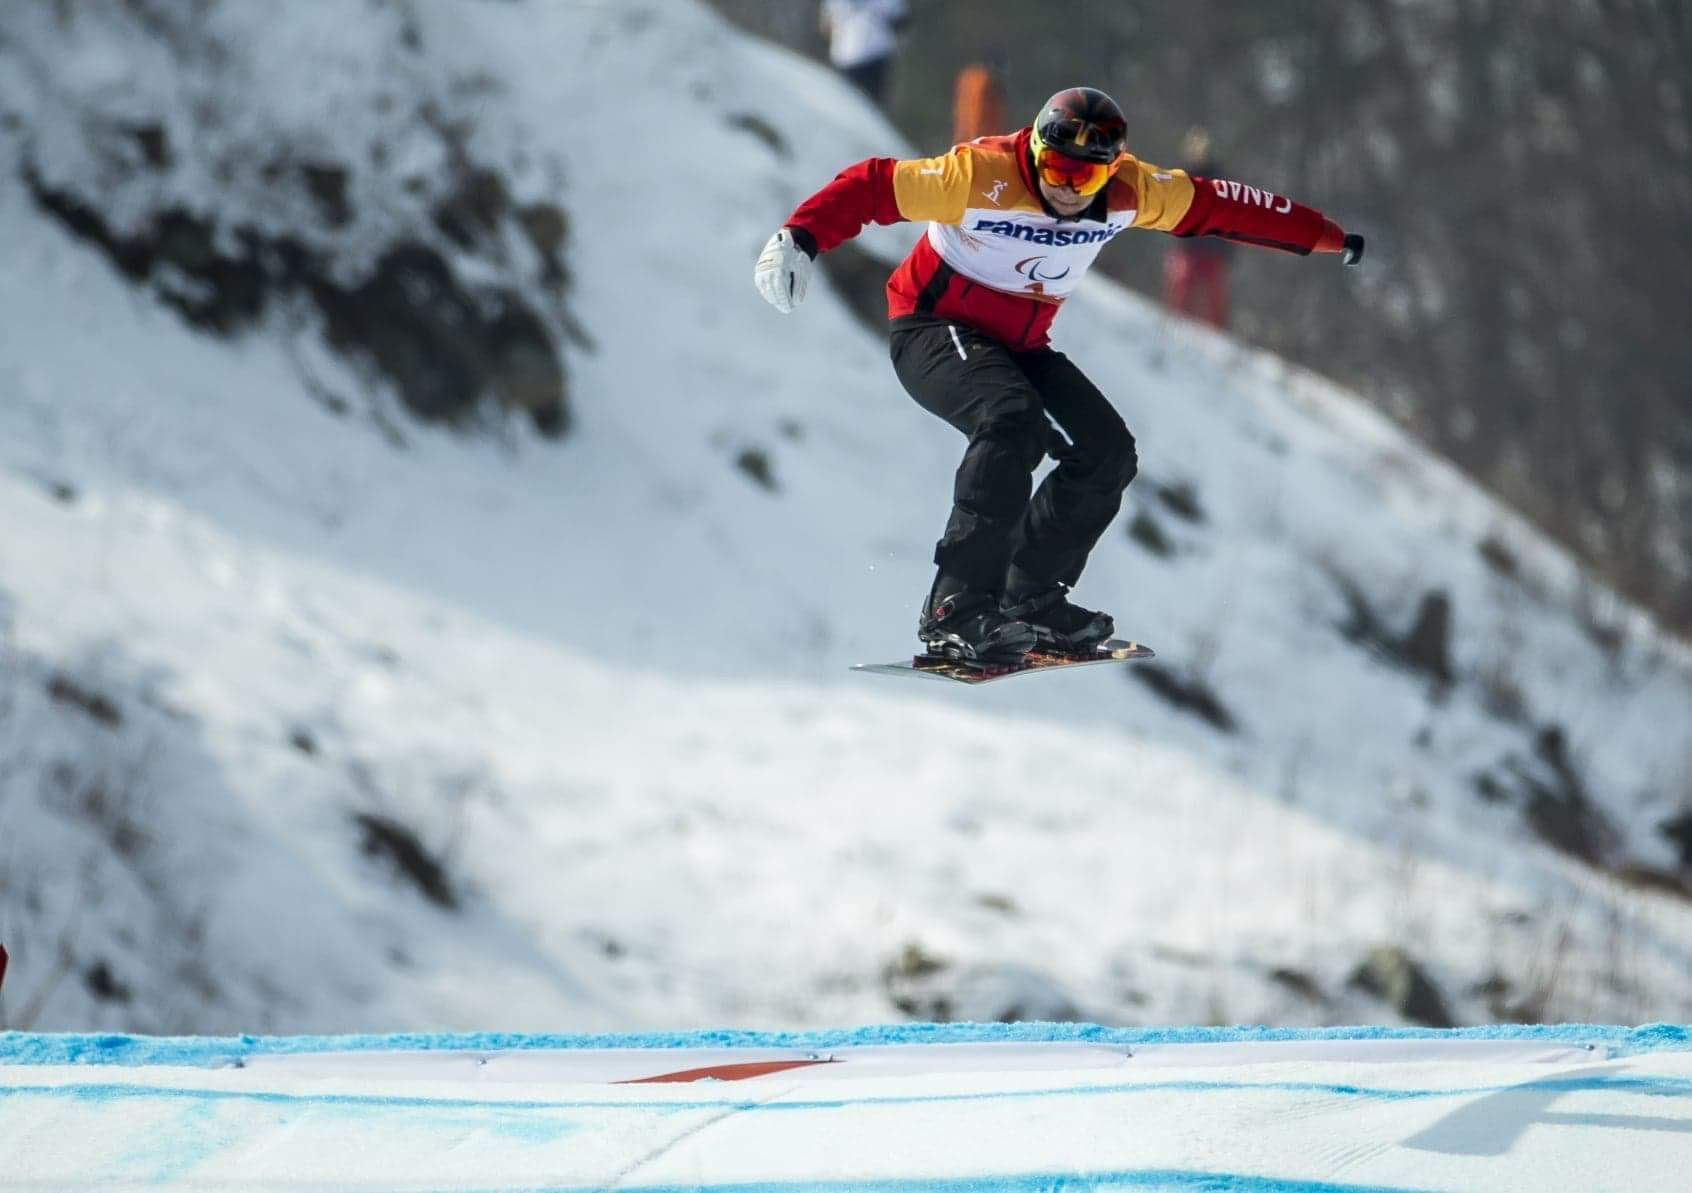 First one to drop into the 2018 Paralympic Snowboardcross course to open the Upper Limb category in Pyeongchang